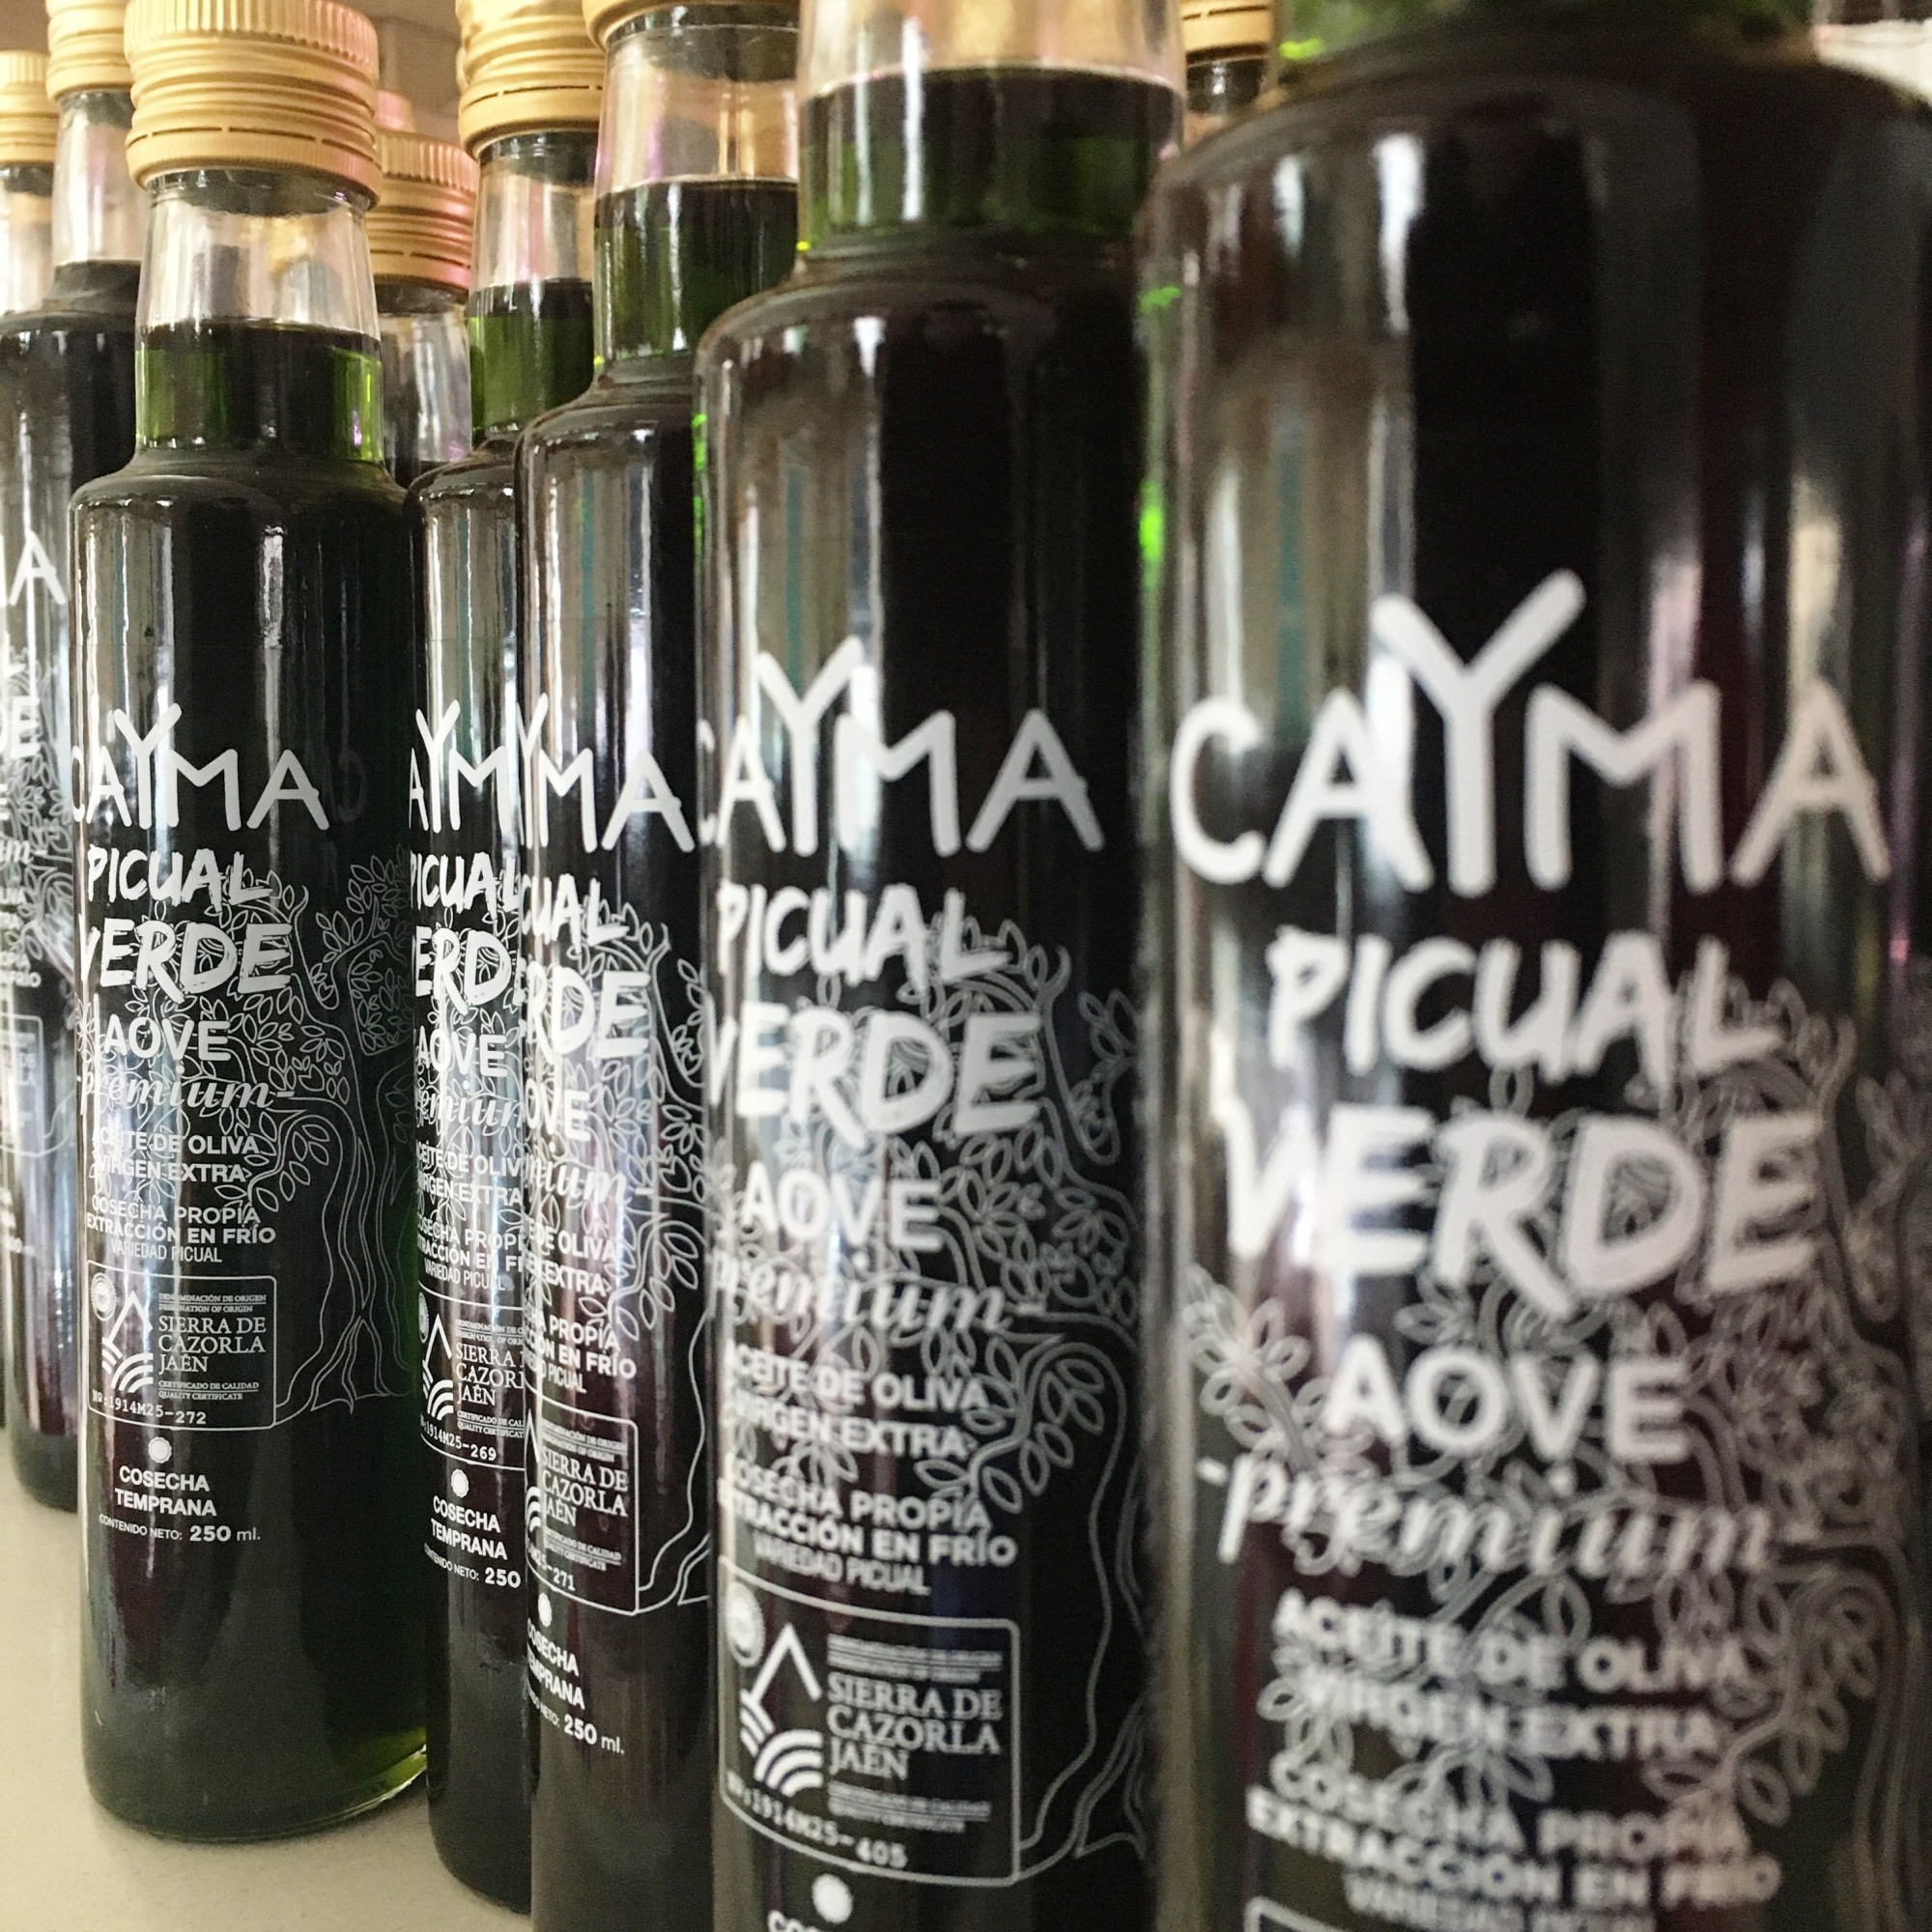 AOVE caYma verde picual aceite oliva virgen extra